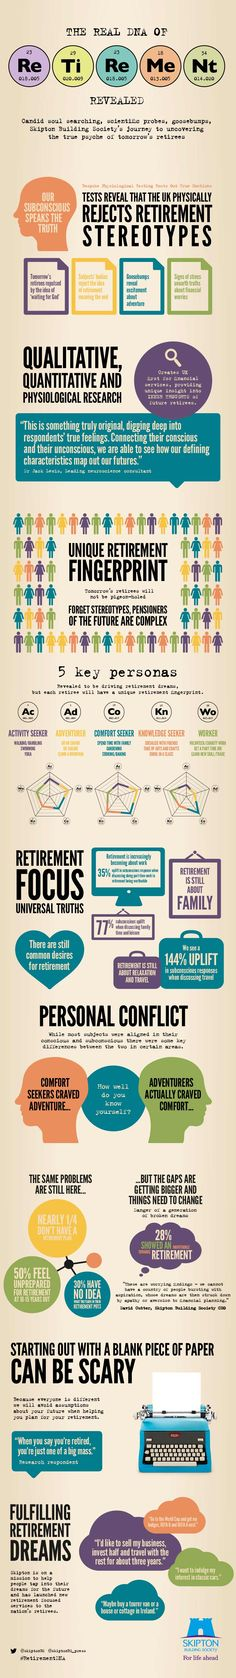 The real DNA of retirement [INFOGRAPHIC] #Real #Retirement #Infographic